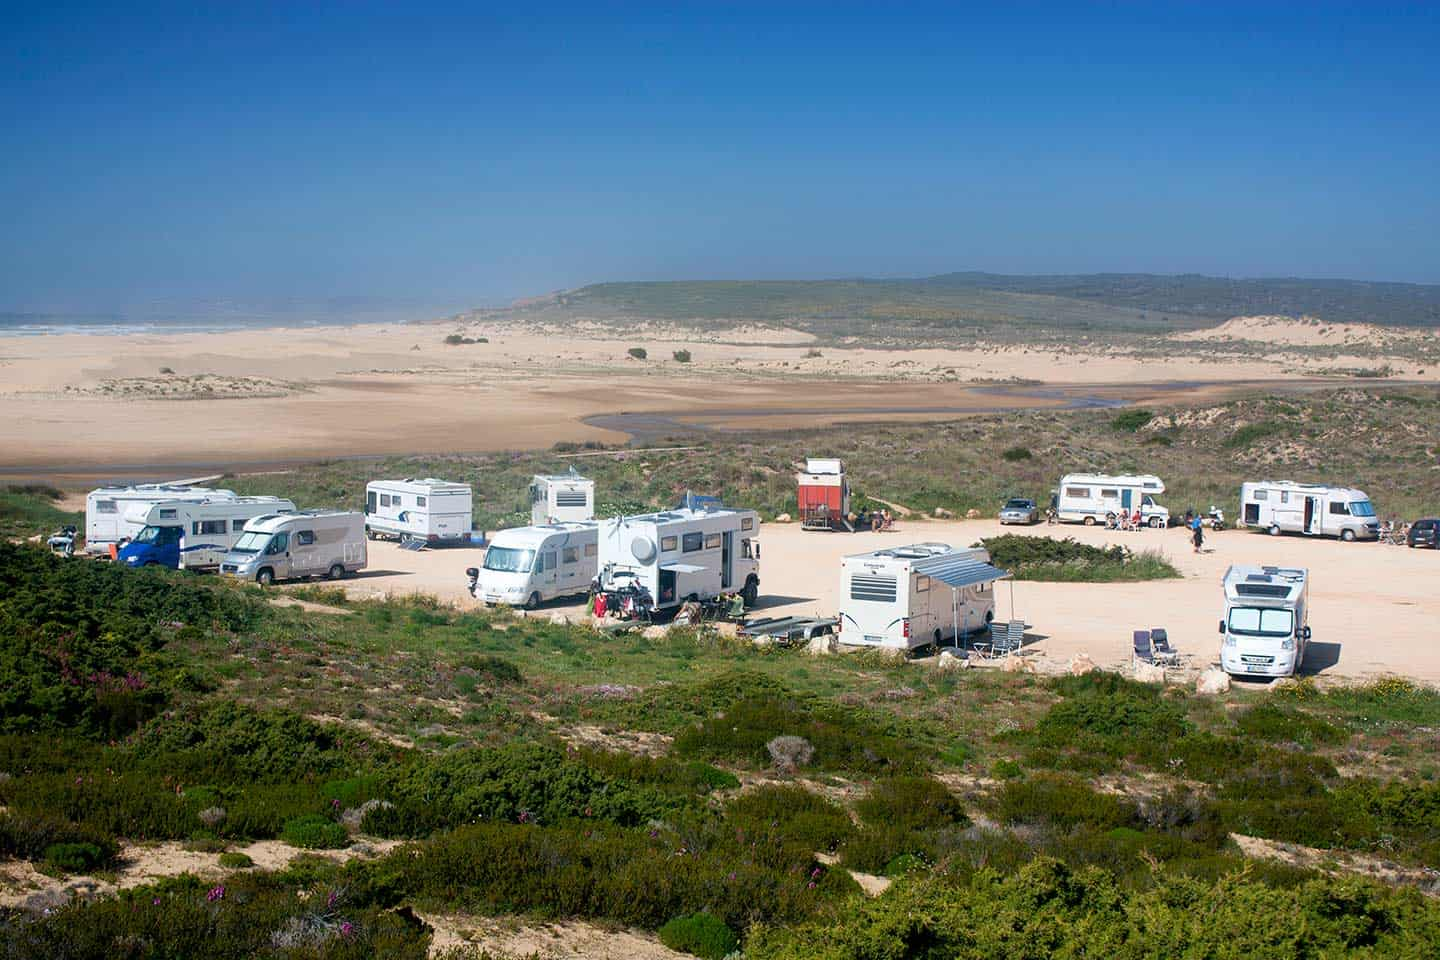 Camping Algarve Image of camper vans at Praia da Bordeira, Carrapateira